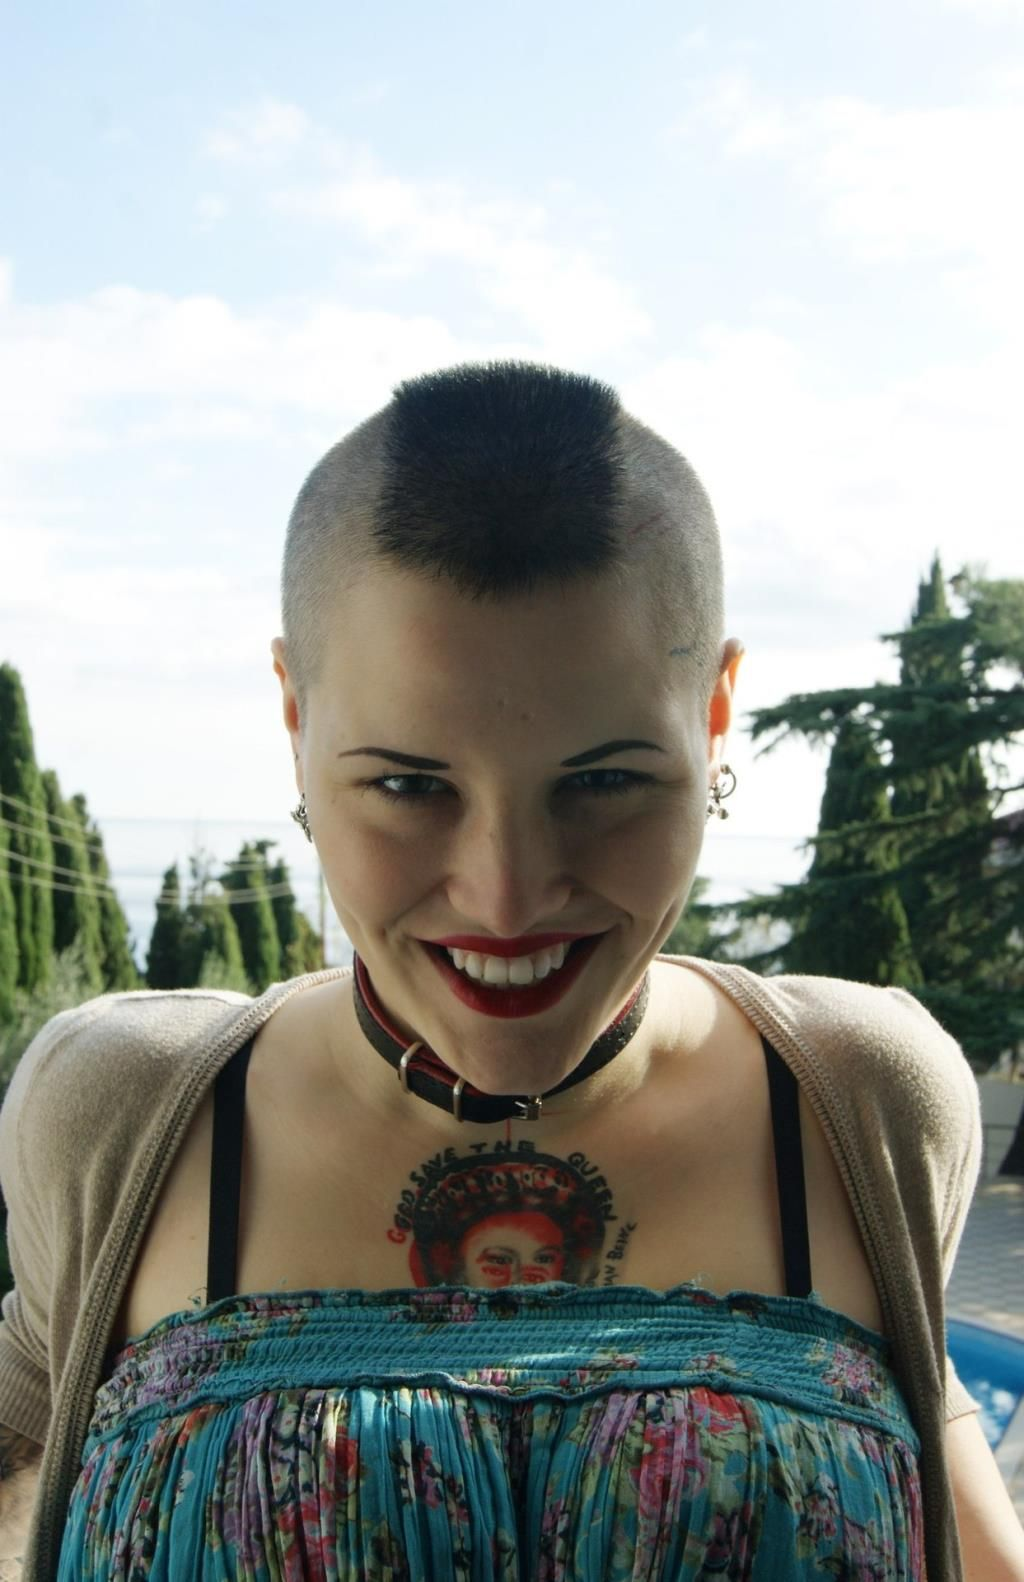 Young woman with shaved sides and mohawk hair cool portraits